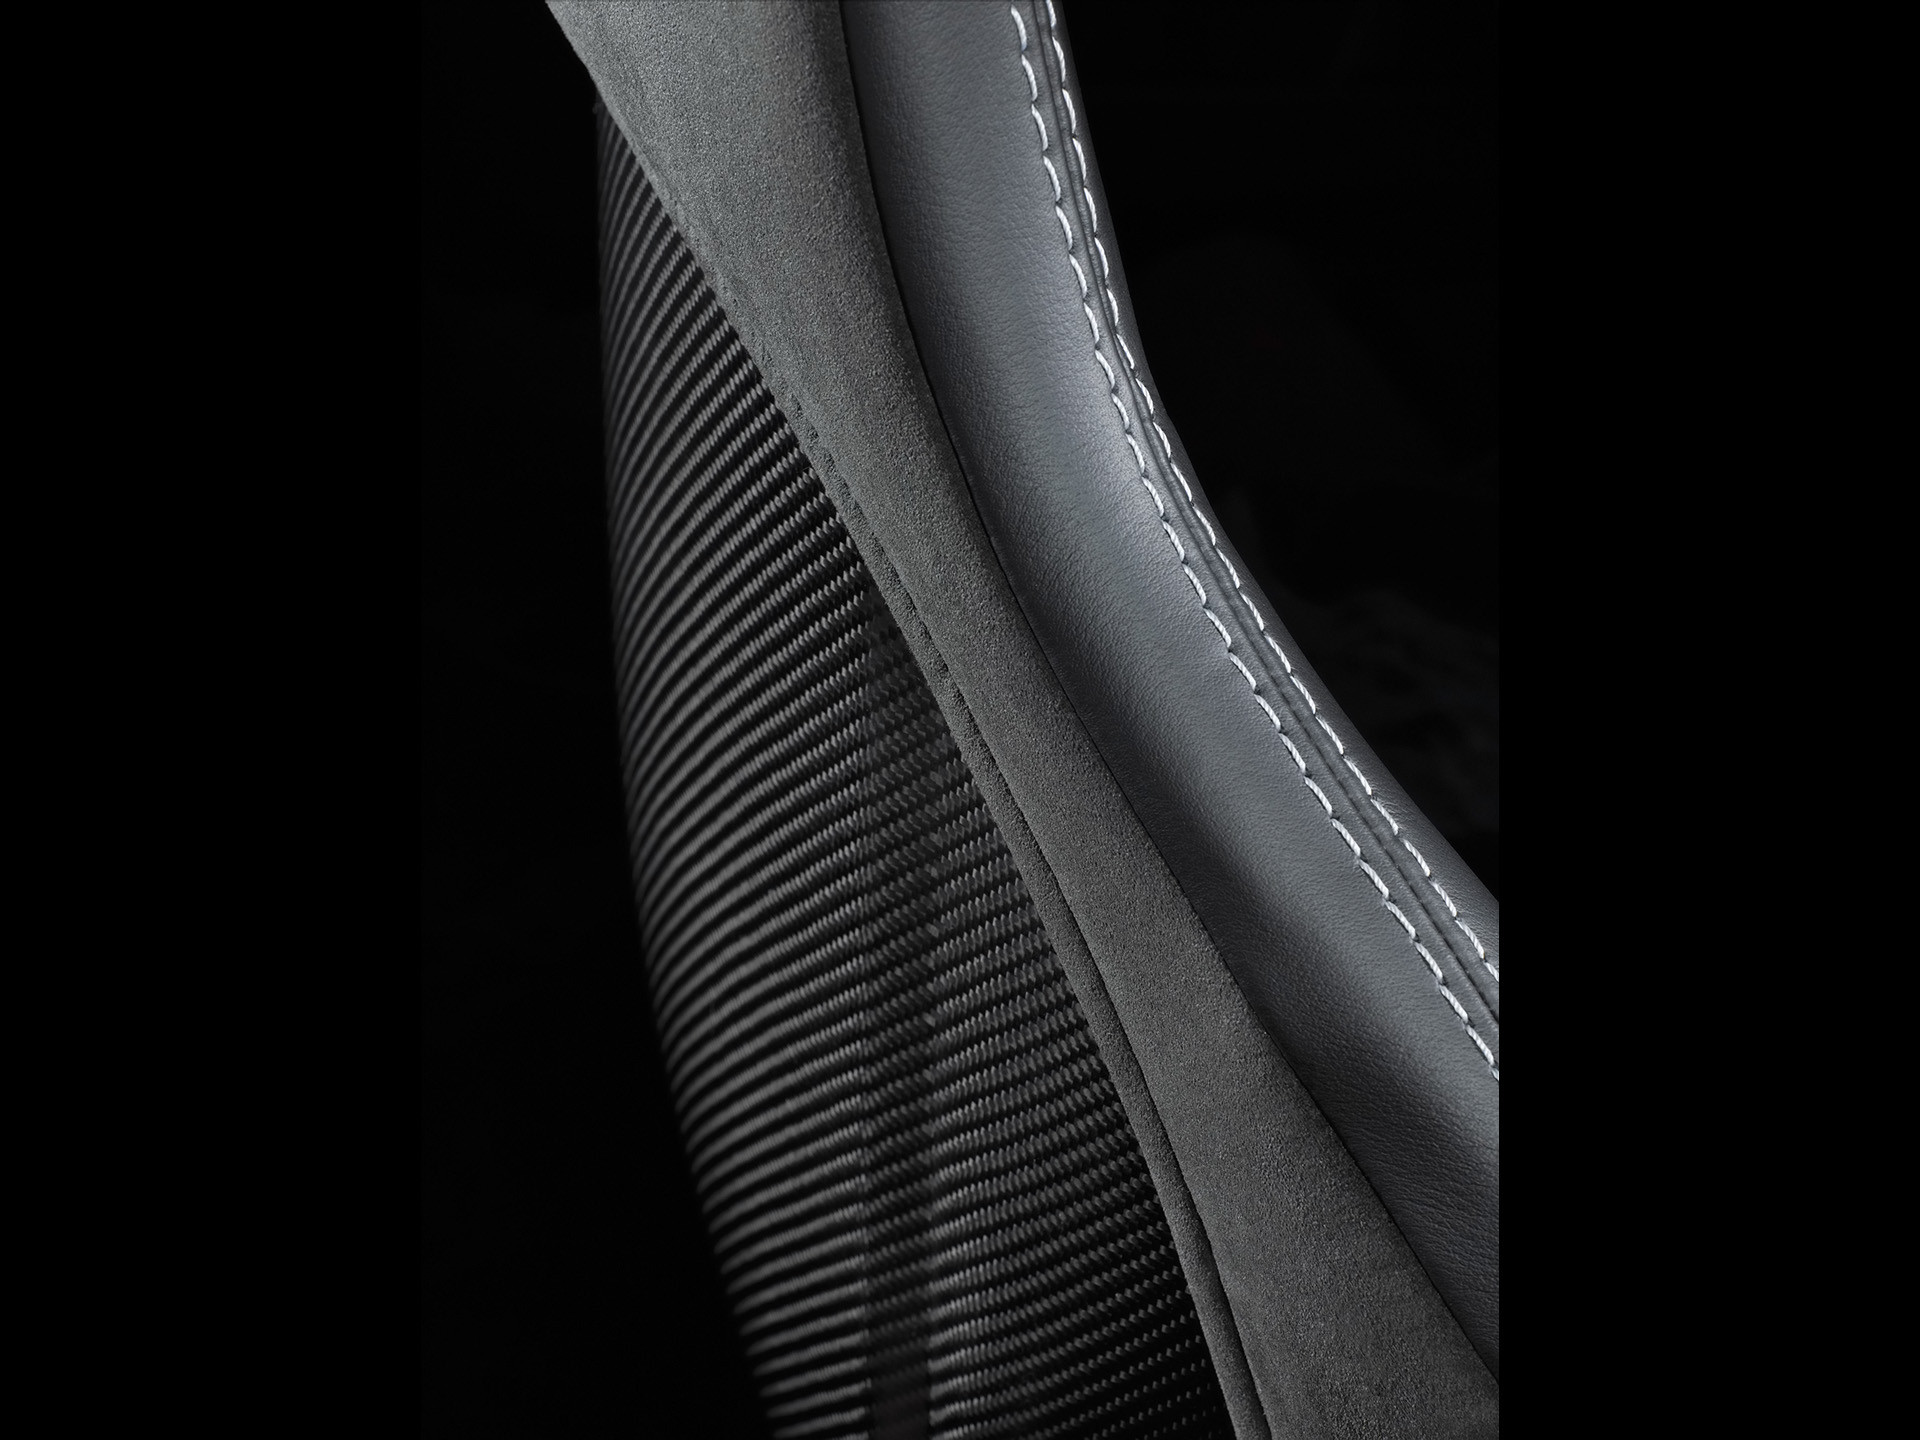 1920x1440 2008 Aston Martin DBS - Carbon Fiber Alcantara and Leather -  -  Wallpaper